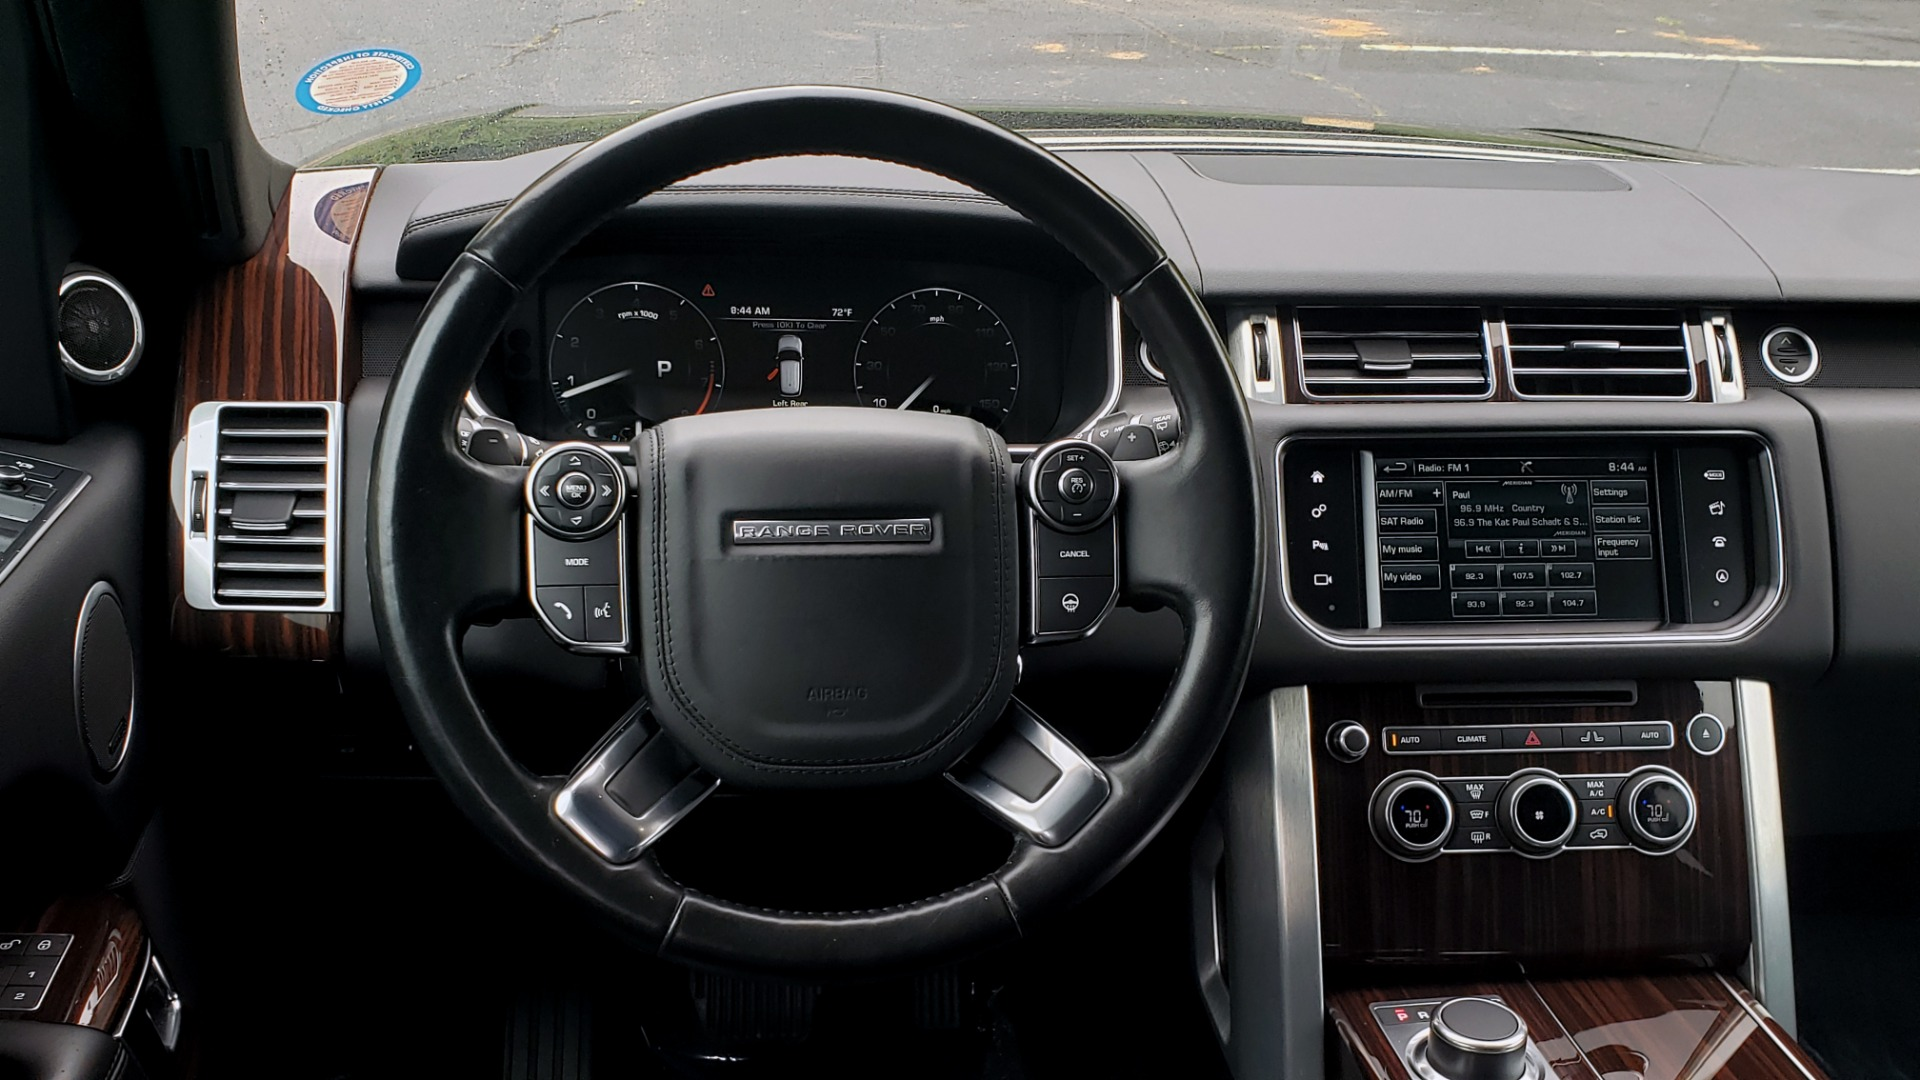 Used 2016 Land Rover Range Rover HSE 3.0L SC V6 / NAV / PANO-ROOF / VENT SEATS / REARVIEW / BLIND SPOT for sale Sold at Formula Imports in Charlotte NC 28227 44